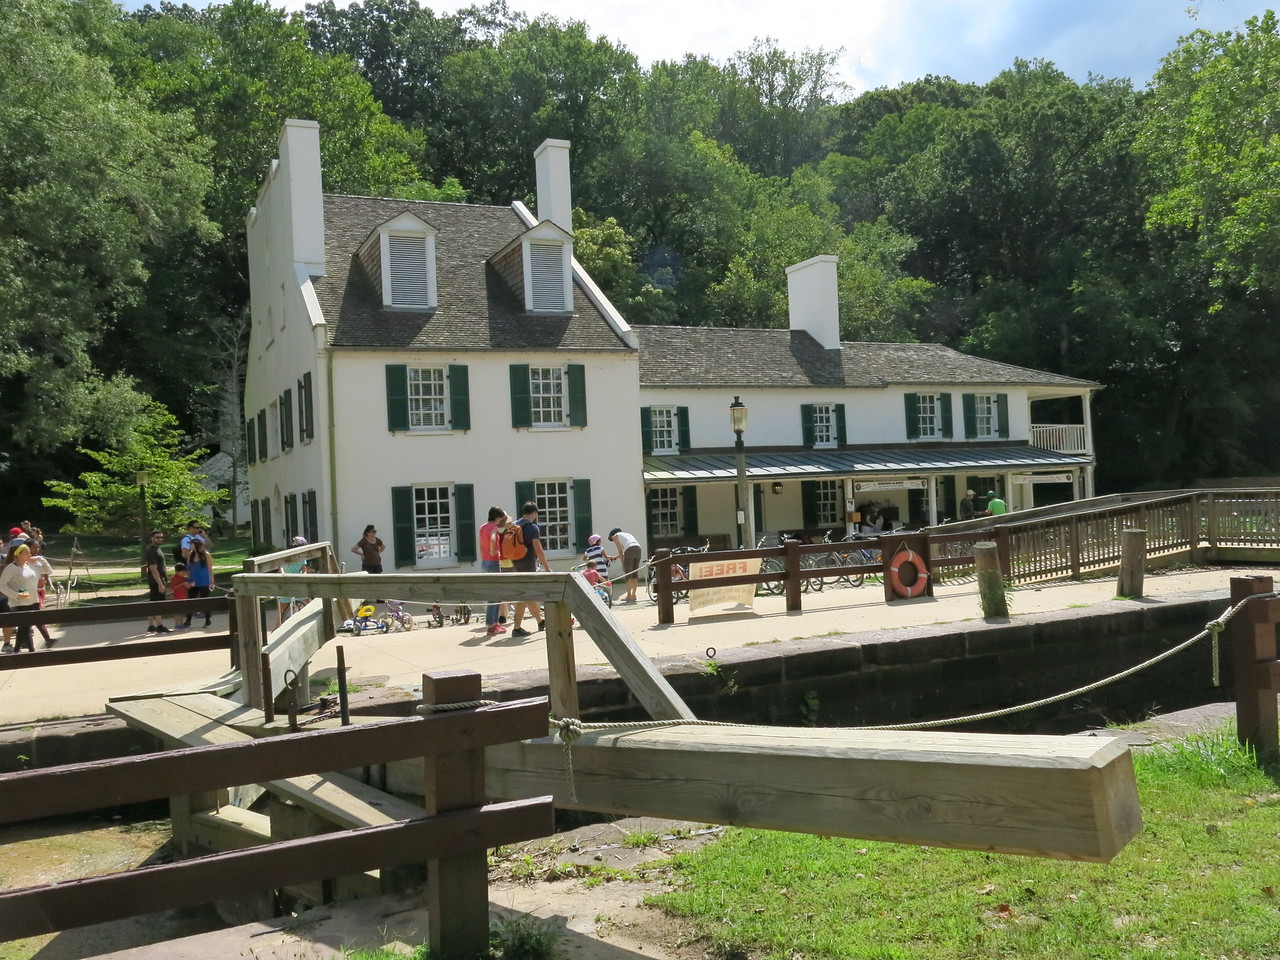 Another view of Lock 20 and the Great Falls Visitor Center